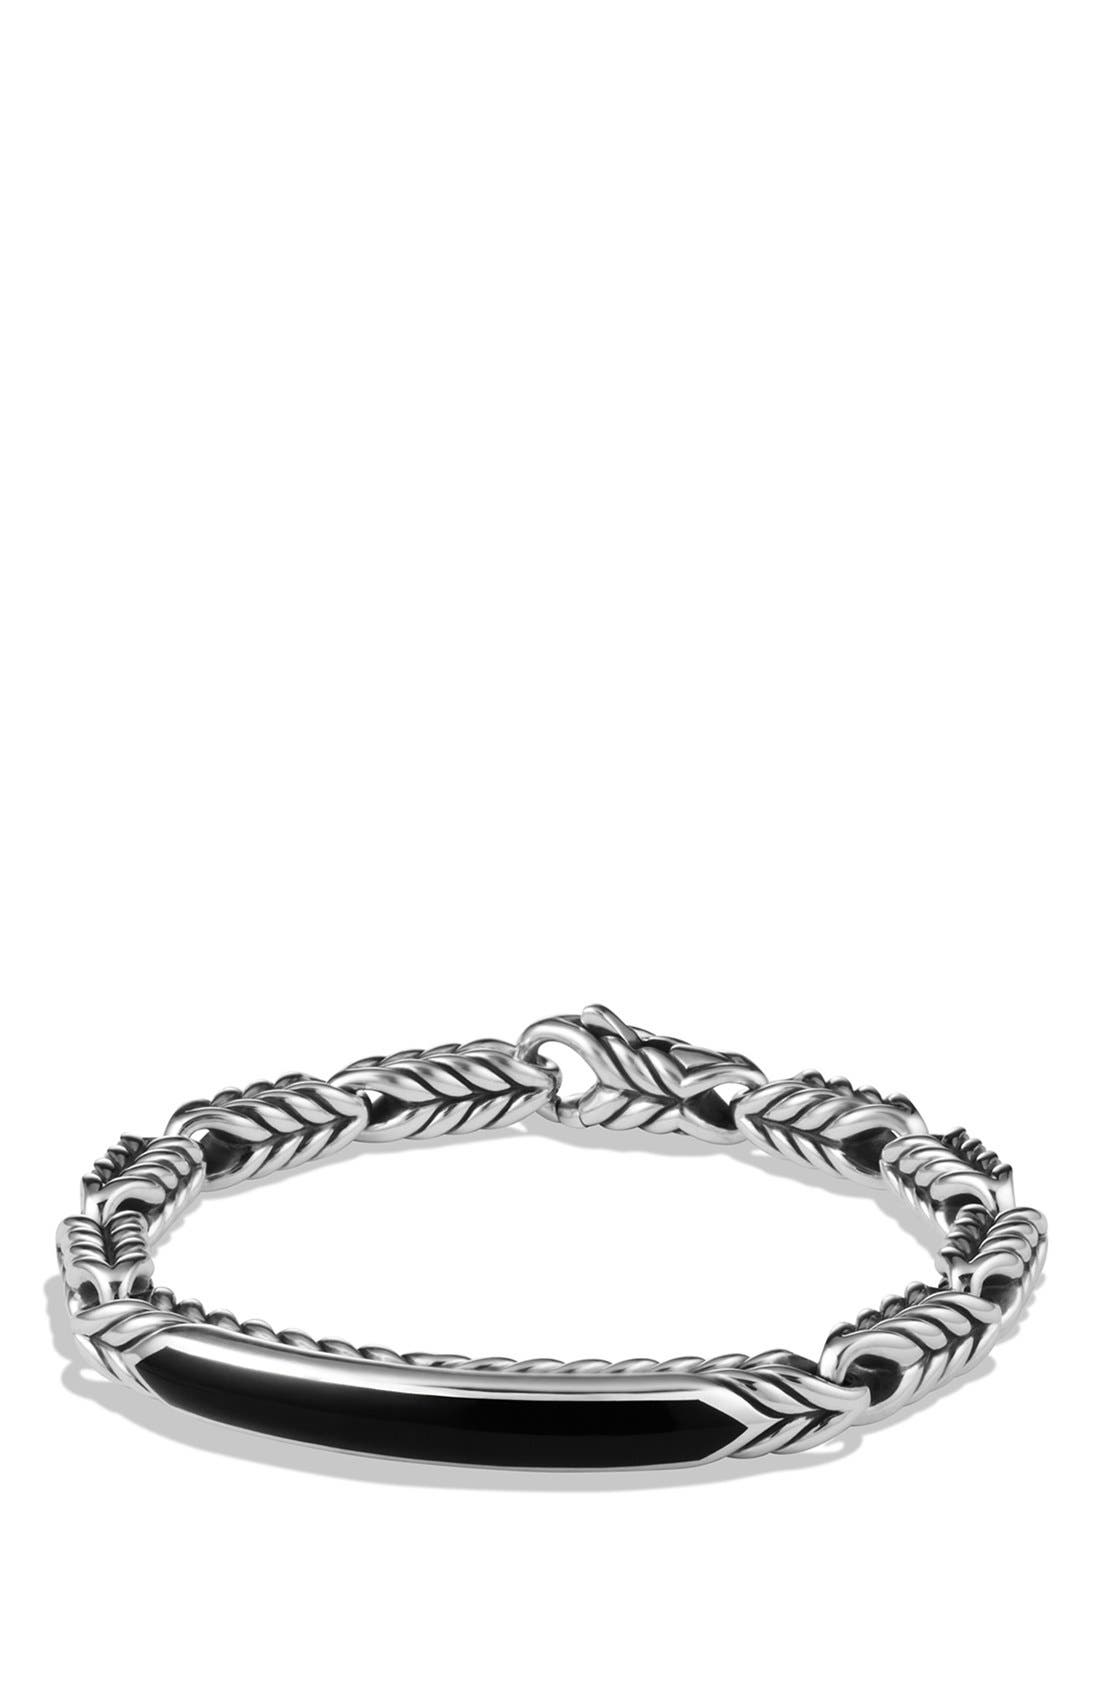 David Yurman 'Chevron' ID Bracelet